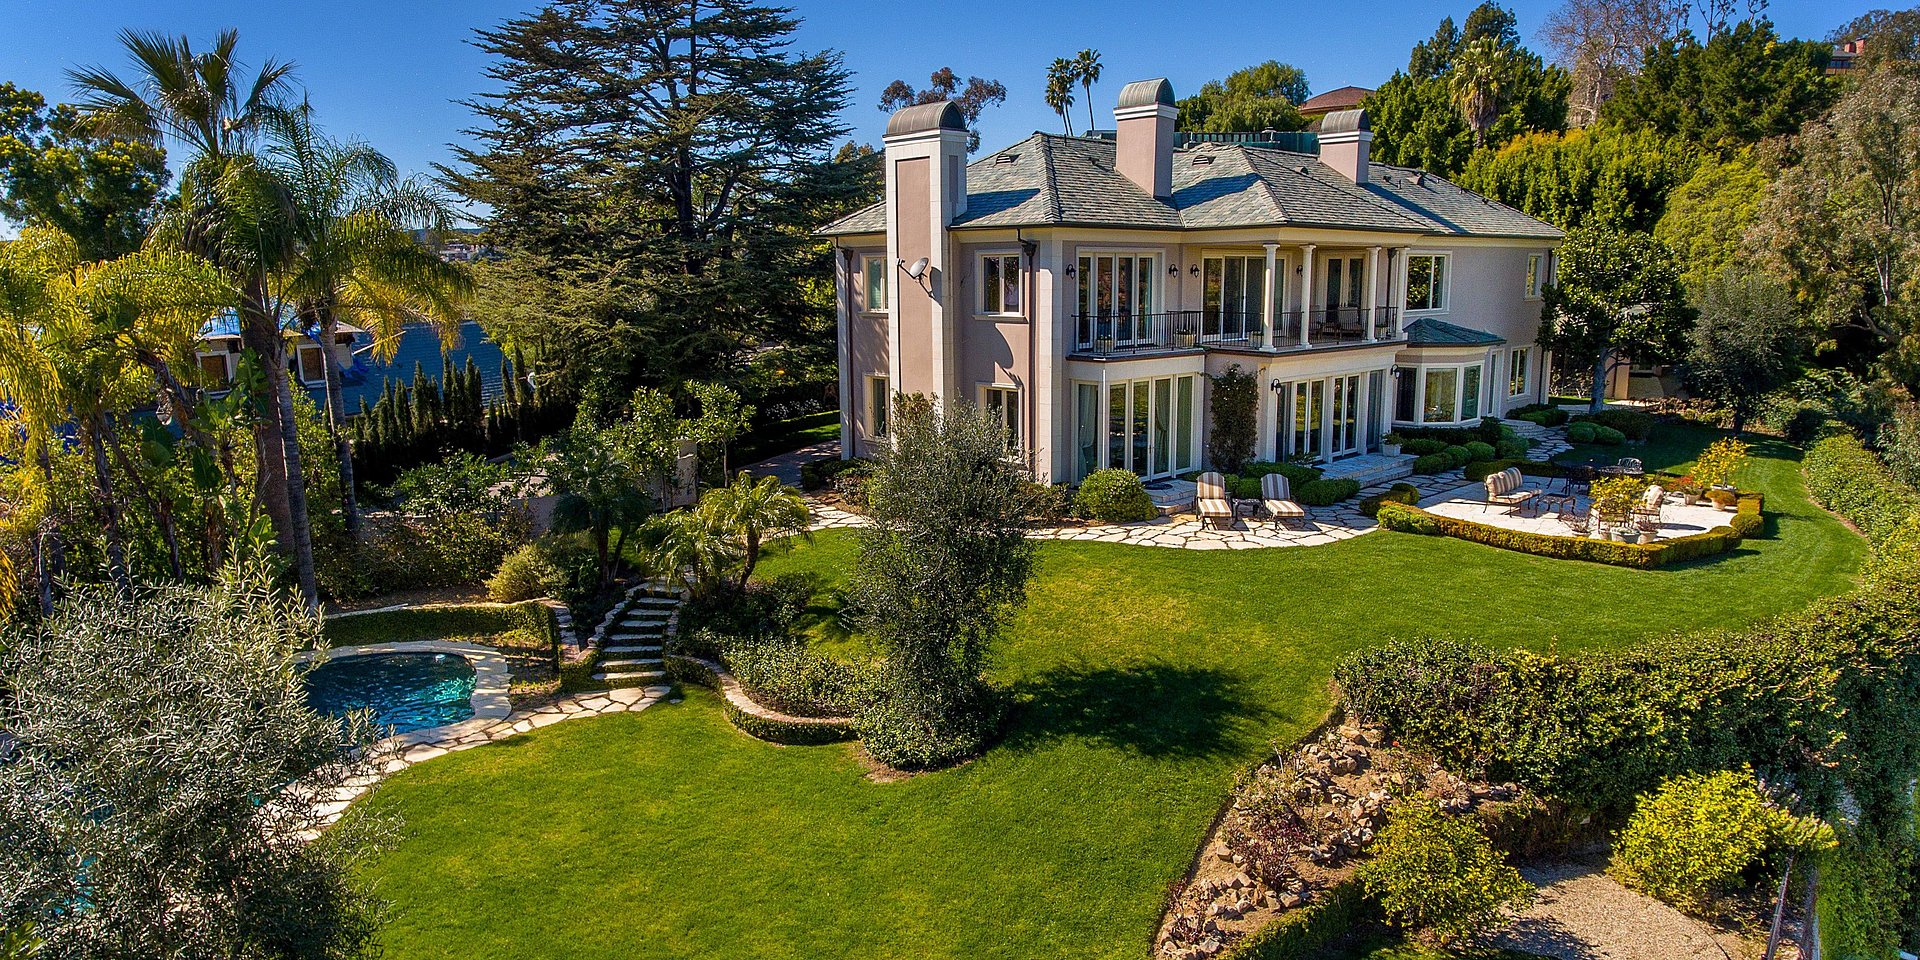 Coldwell Banker Residential Brokerage Lists Bel Air Property for $12.5 Million